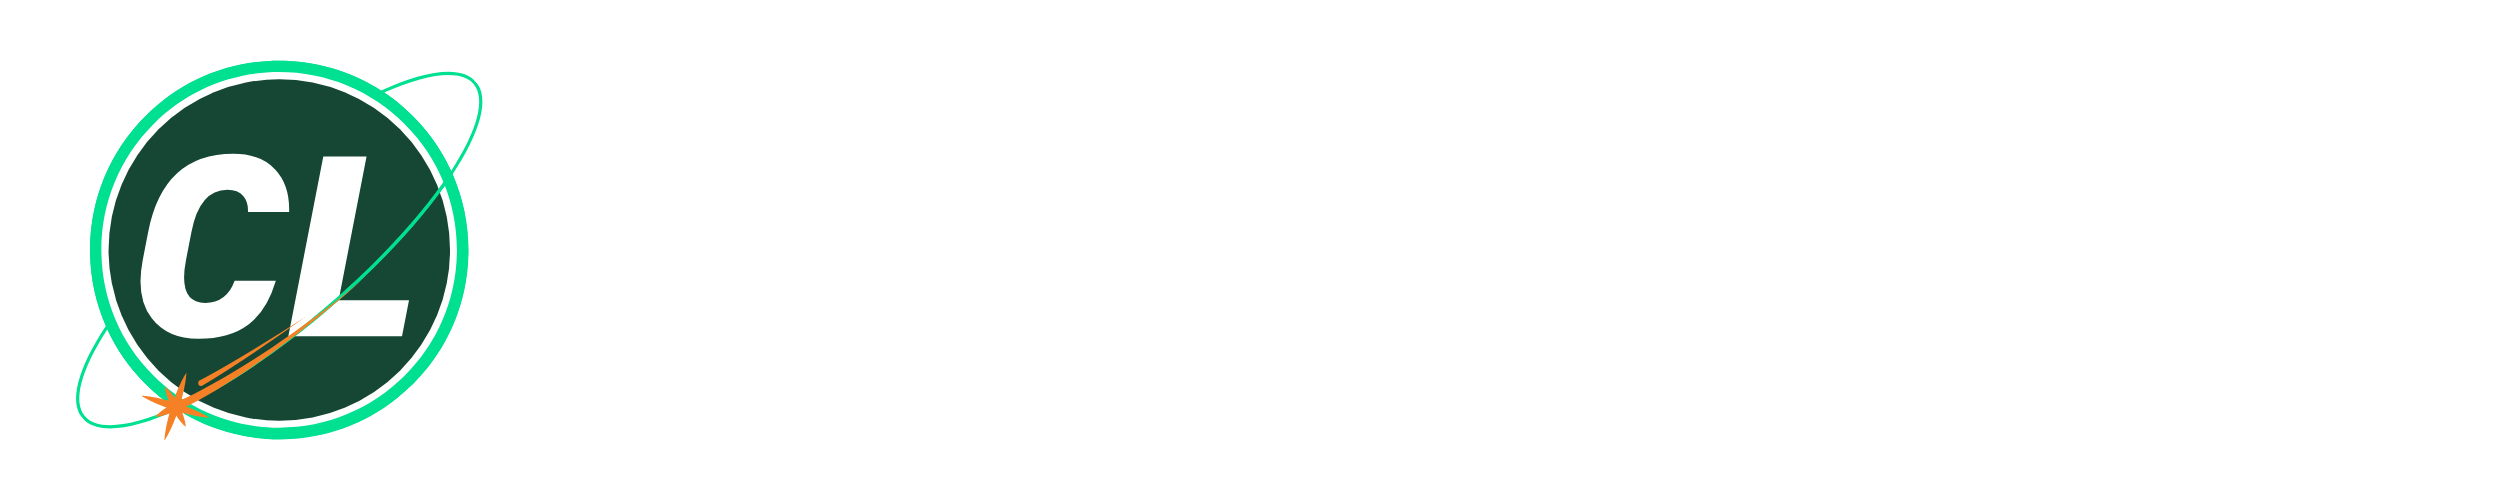 UT Dallas Comet Life